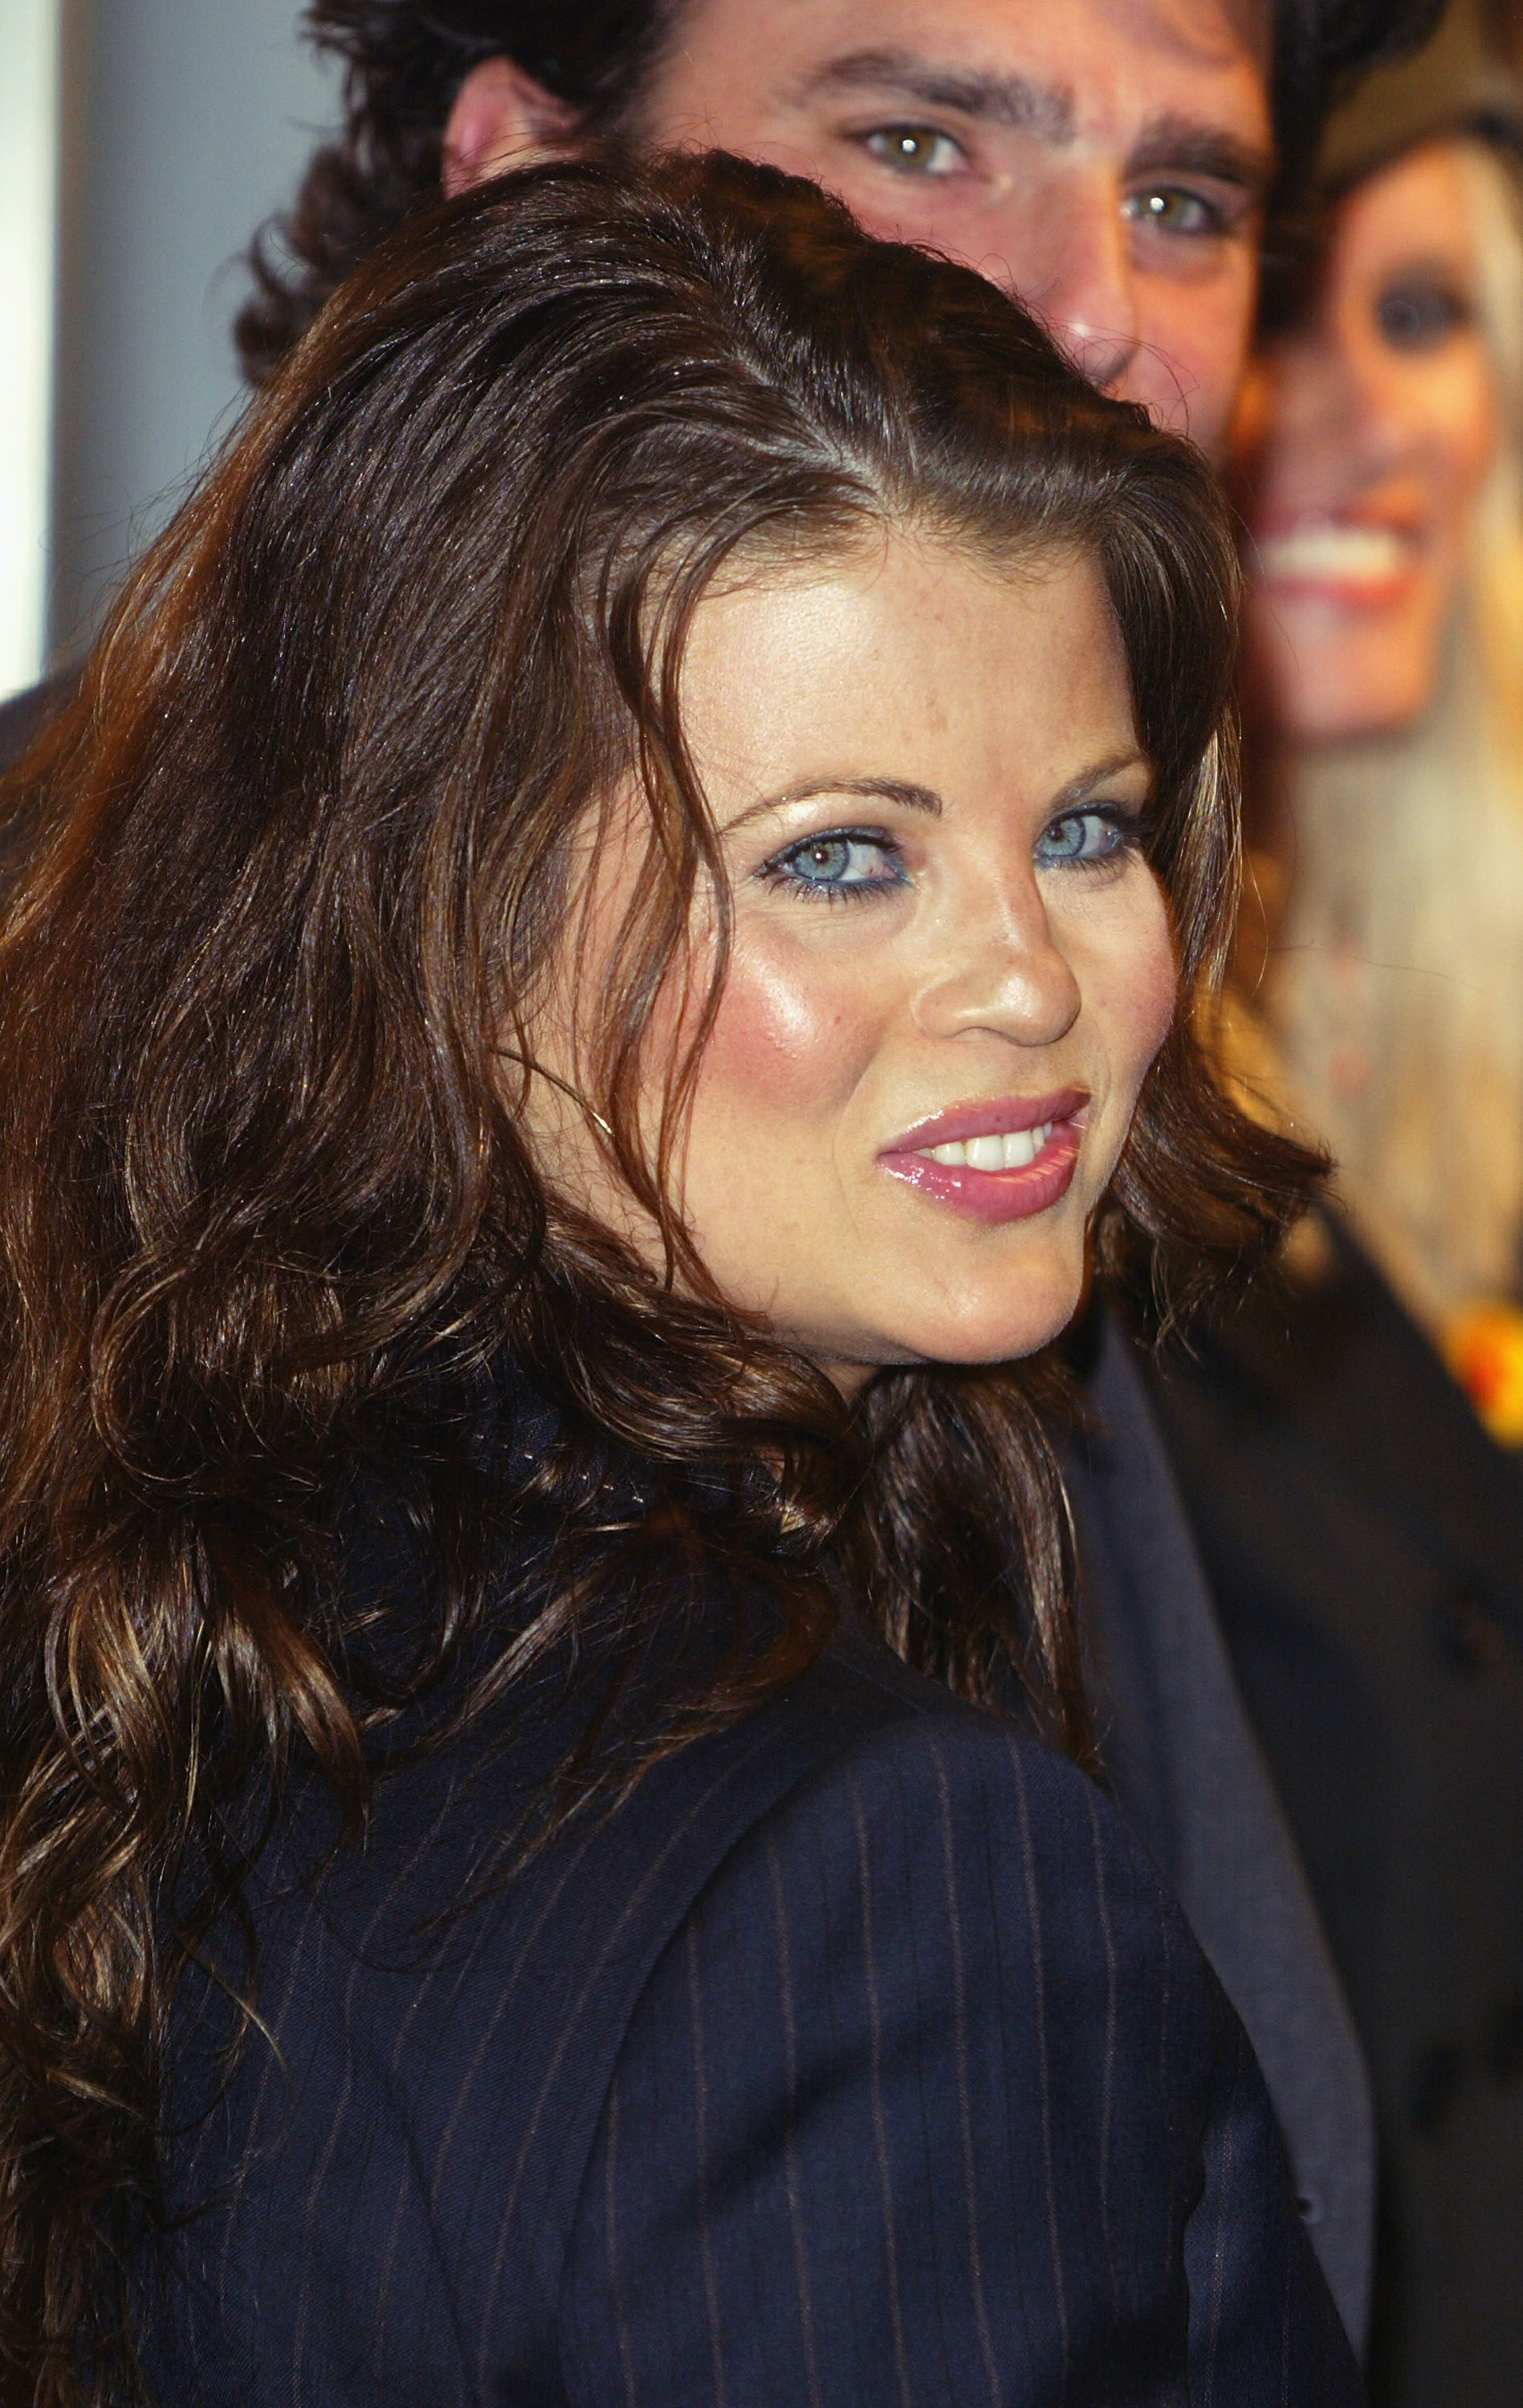 yasmine bleeth heightyasmine bleeth 2019, yasmine bleeth height, yasmine bleeth age, yasmine bleeth and matthew perry, yasmine bleeth instagram, yasmine bleeth baywatch, yasmine bleeth 90s, yasmine bleeth chandler bing, yasmine bleeth, yasmine bleeth now, yasmine bleeth drugs, yasmine bleeth photos, yasmine bleeth today, yasmine bleeth net worth, yasmine bleeth feet, yasmine bleeth now 2019, yasmine bleeth images, yasmine bleeth imdb, yasmine bleeth oggi, yasmine bleeth friends